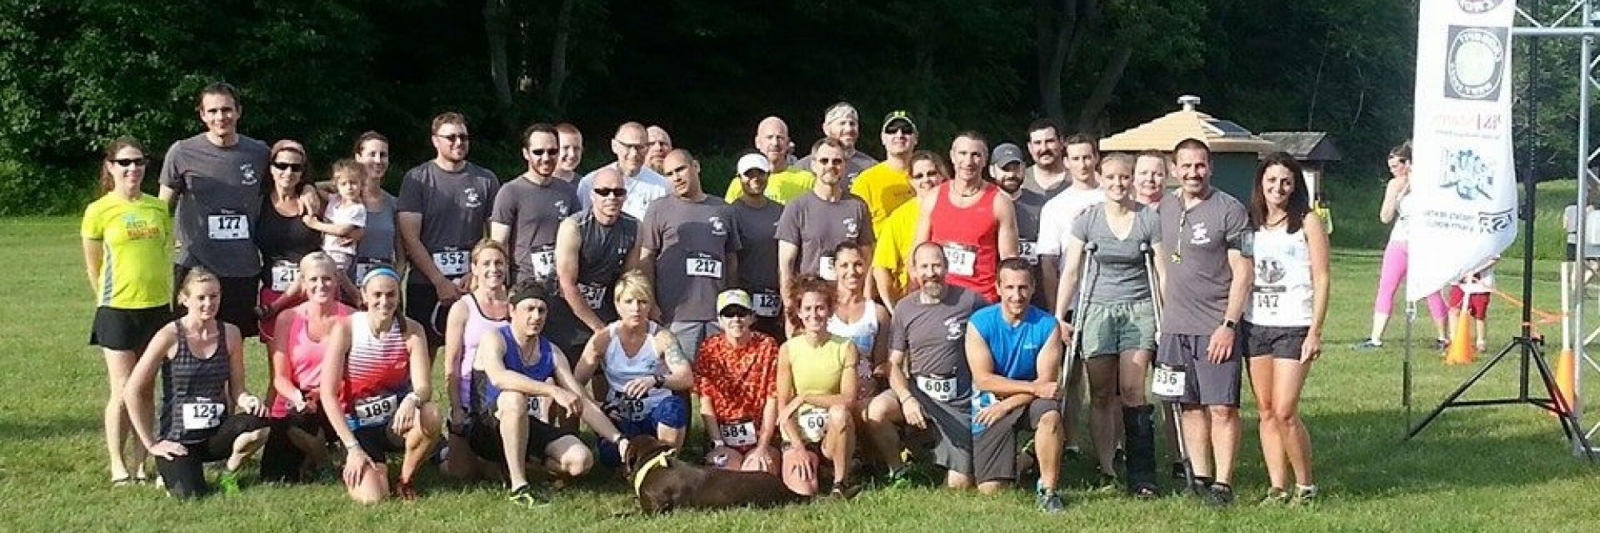 Salt Shaker group photo at summer solstice trail run at kitatinny state park